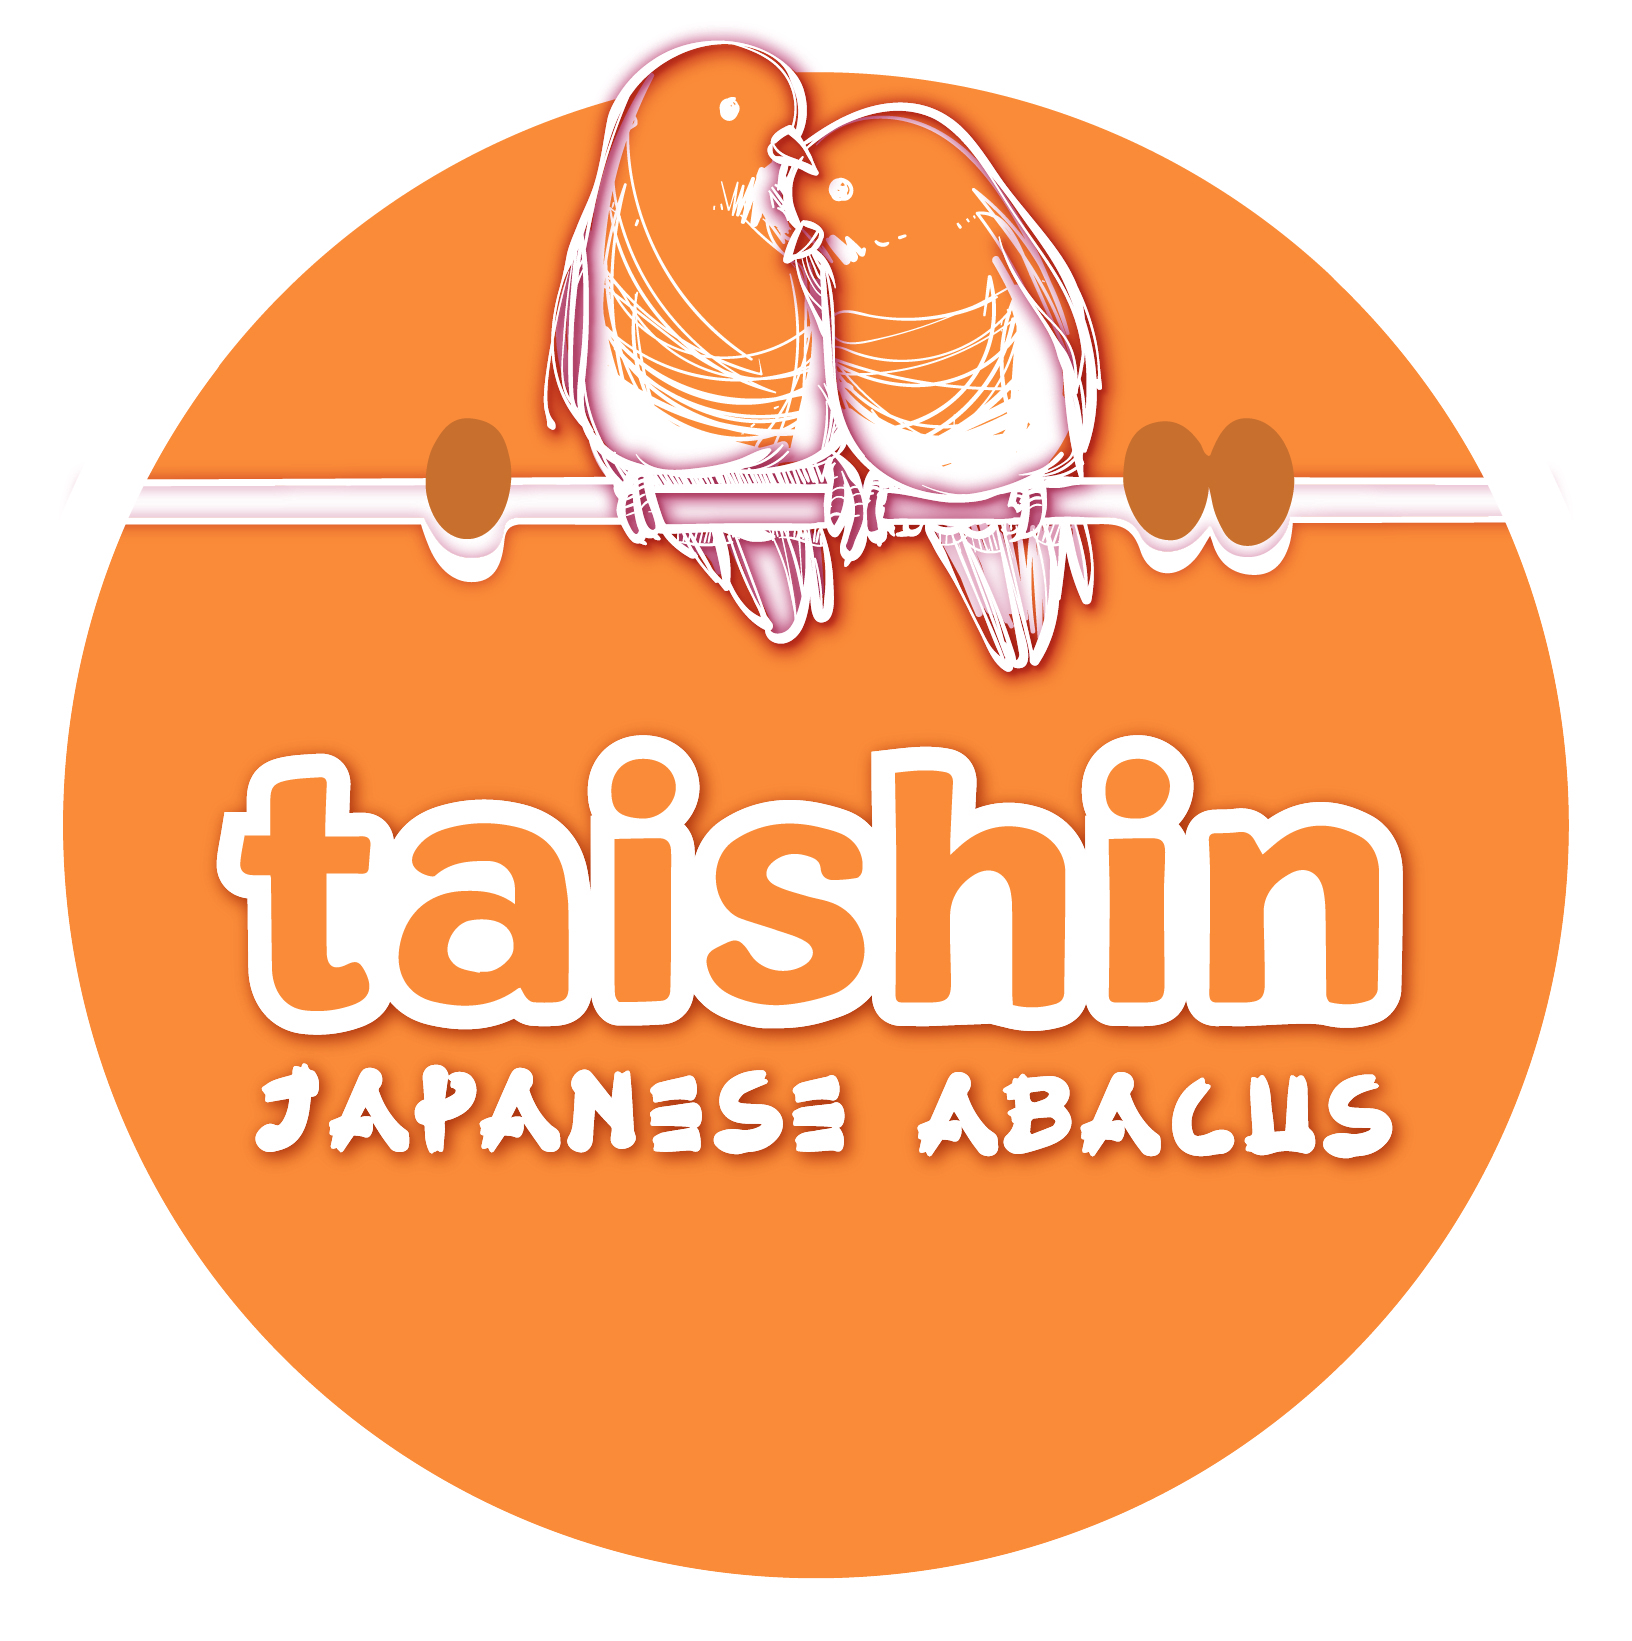 Taishin birds logo noflower noaddress final